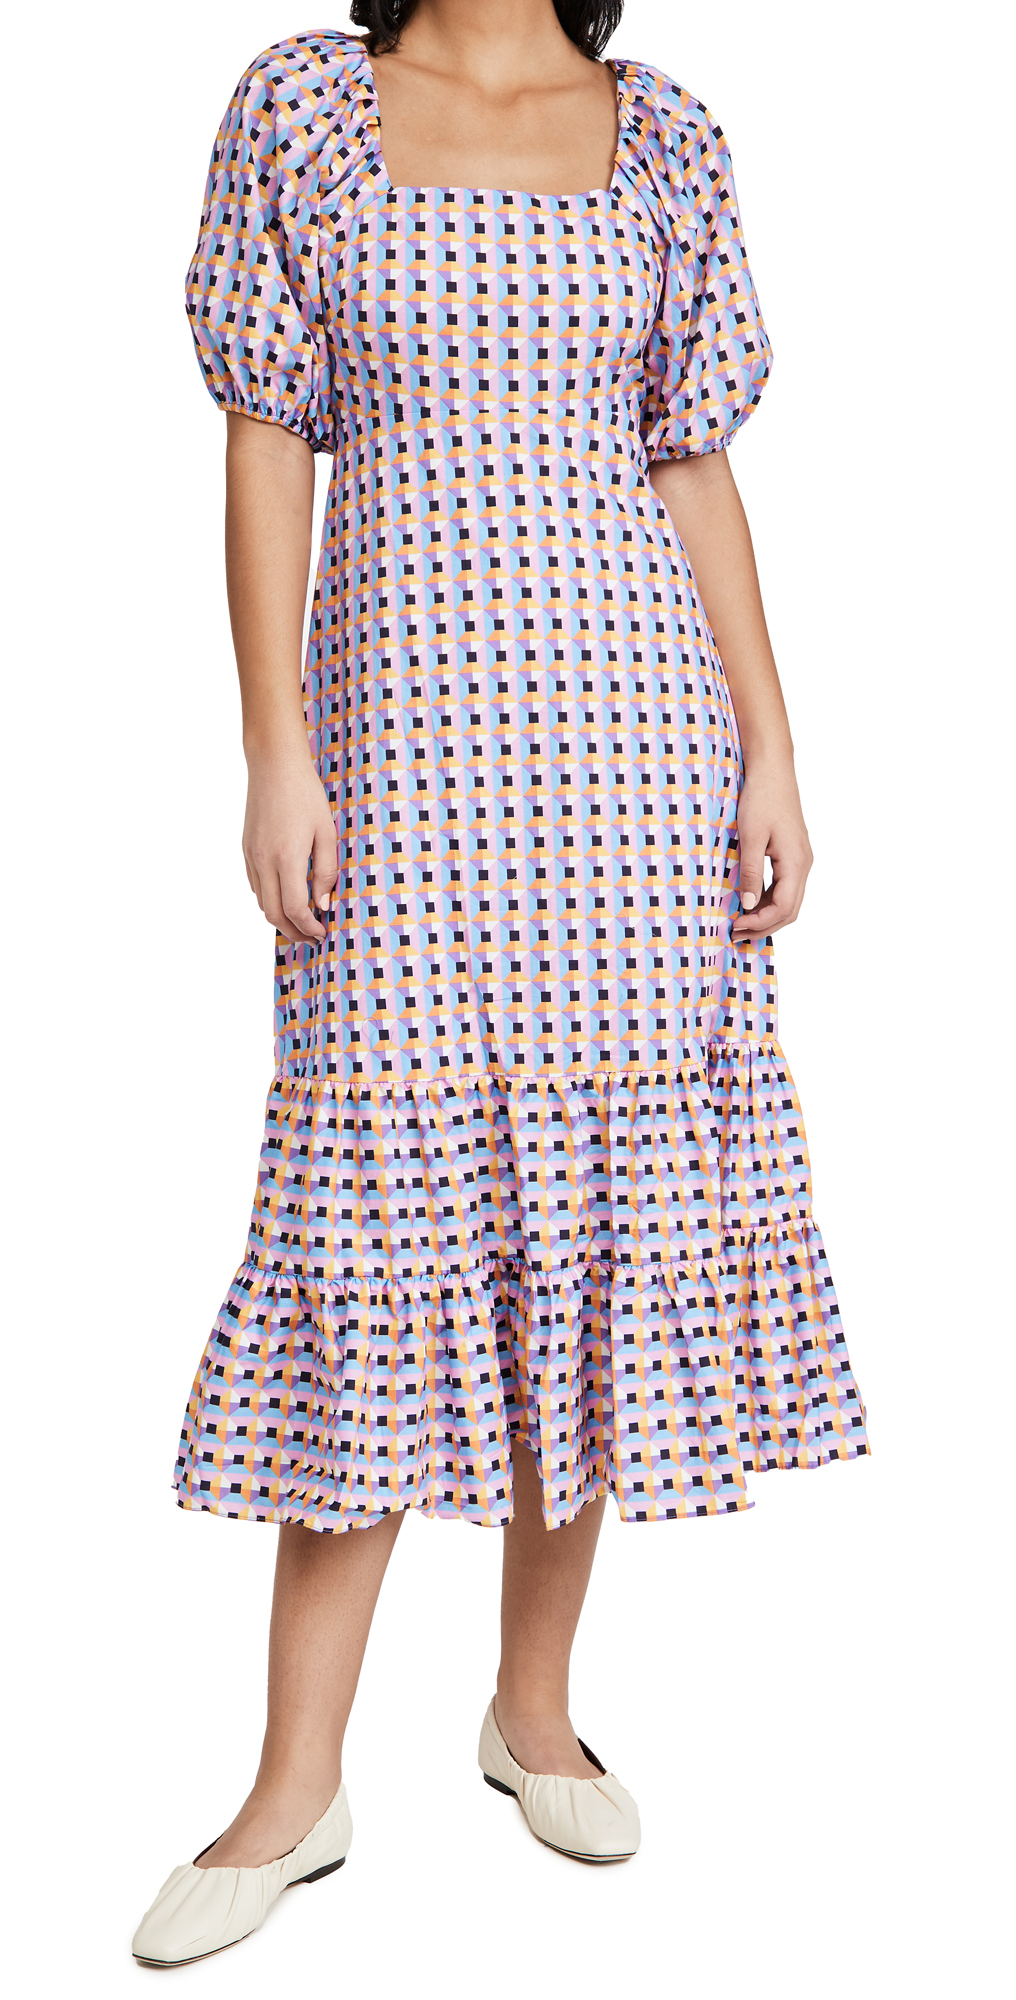 Tanya Taylor Cynthia Dress